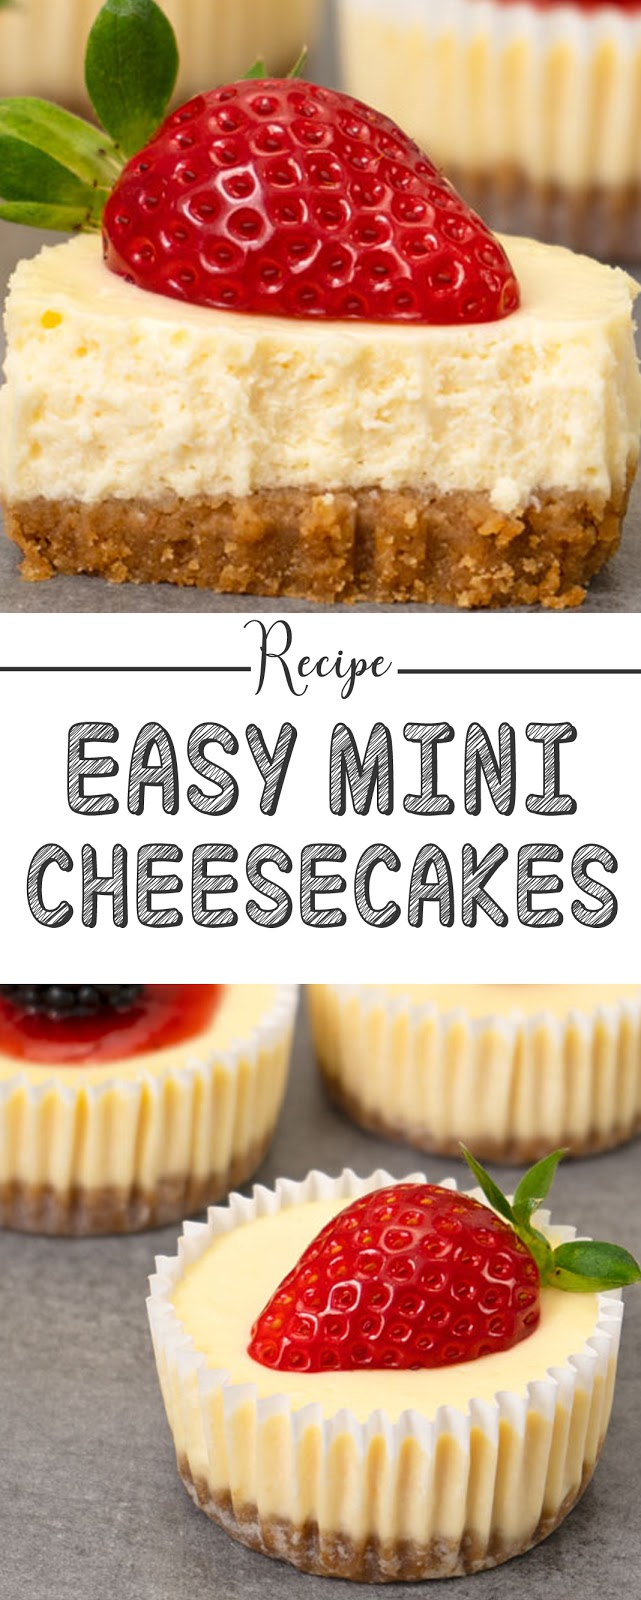 Recipe Easy Mini Cheesecakes #cheesecakes #cake